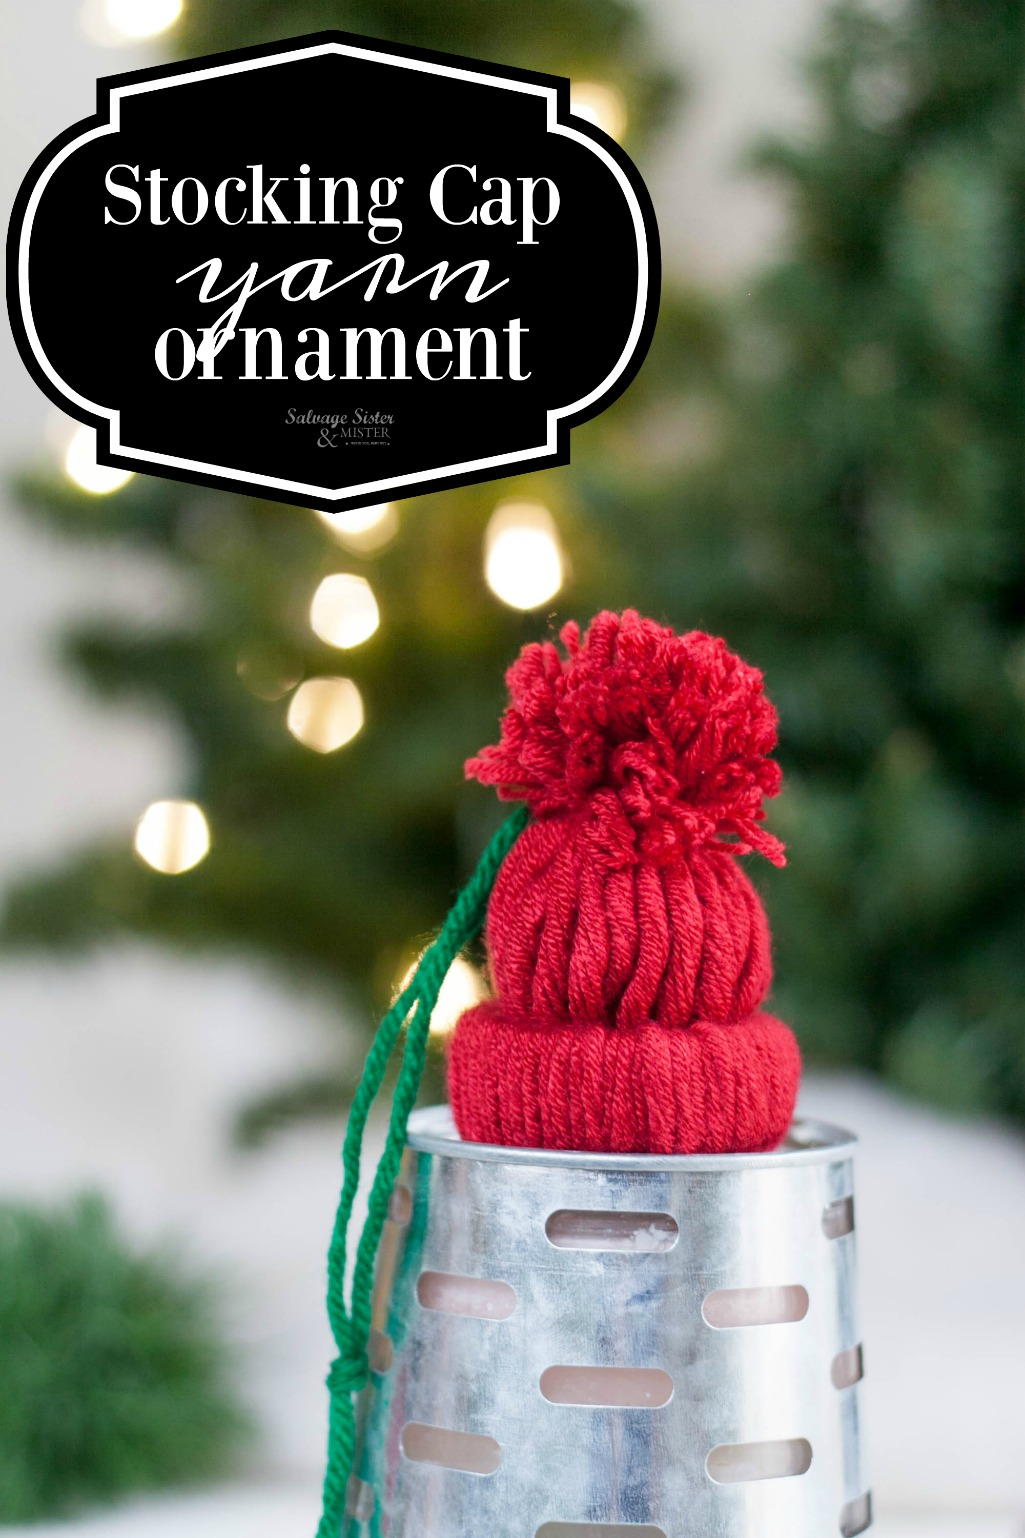 Craft project - DIY stocking cap yarn ornament is a great way to use up extra yarn and a toilet paper roll. This is a great gift to give, a fun craft activity for families or schools, or to give at an ornament exchange. Fun farmhouse feel or maybe use on a kids tree in their rooms. Get the full instructions on salvagesisterandmister.com